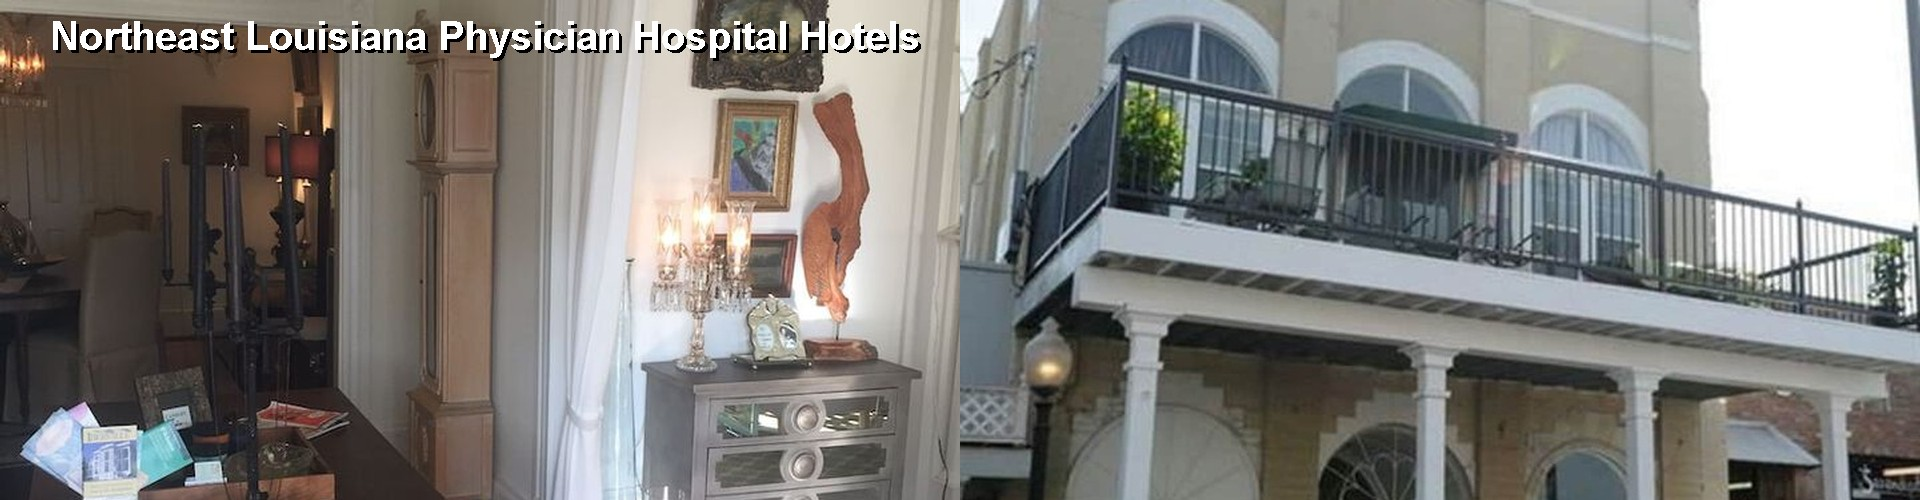 5 Best Hotels near Northeast Louisiana Physician Hospital